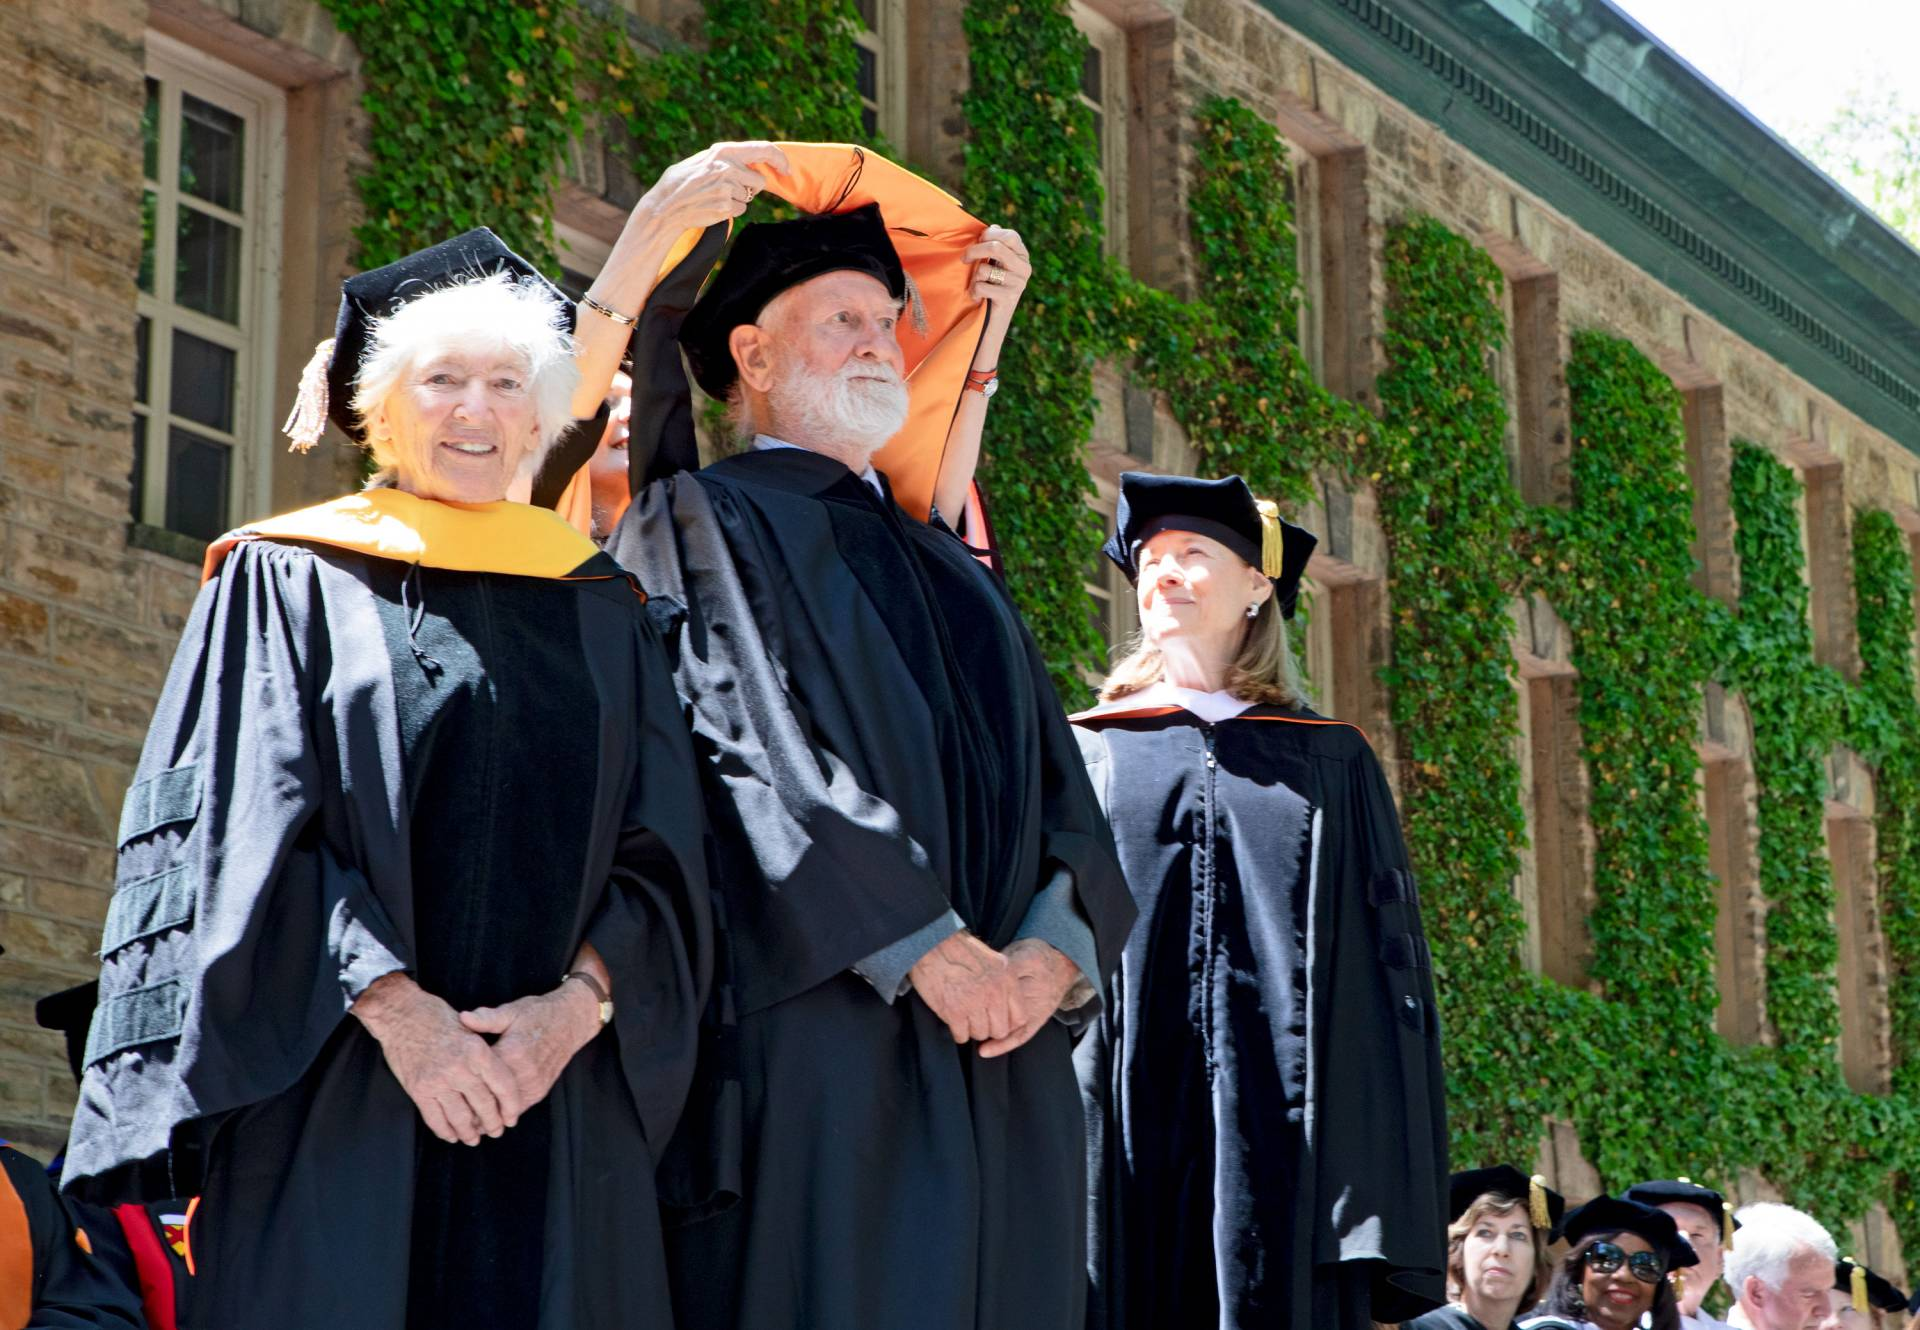 B. Rosemary Grant and Peter Grant receiving honorary degrees